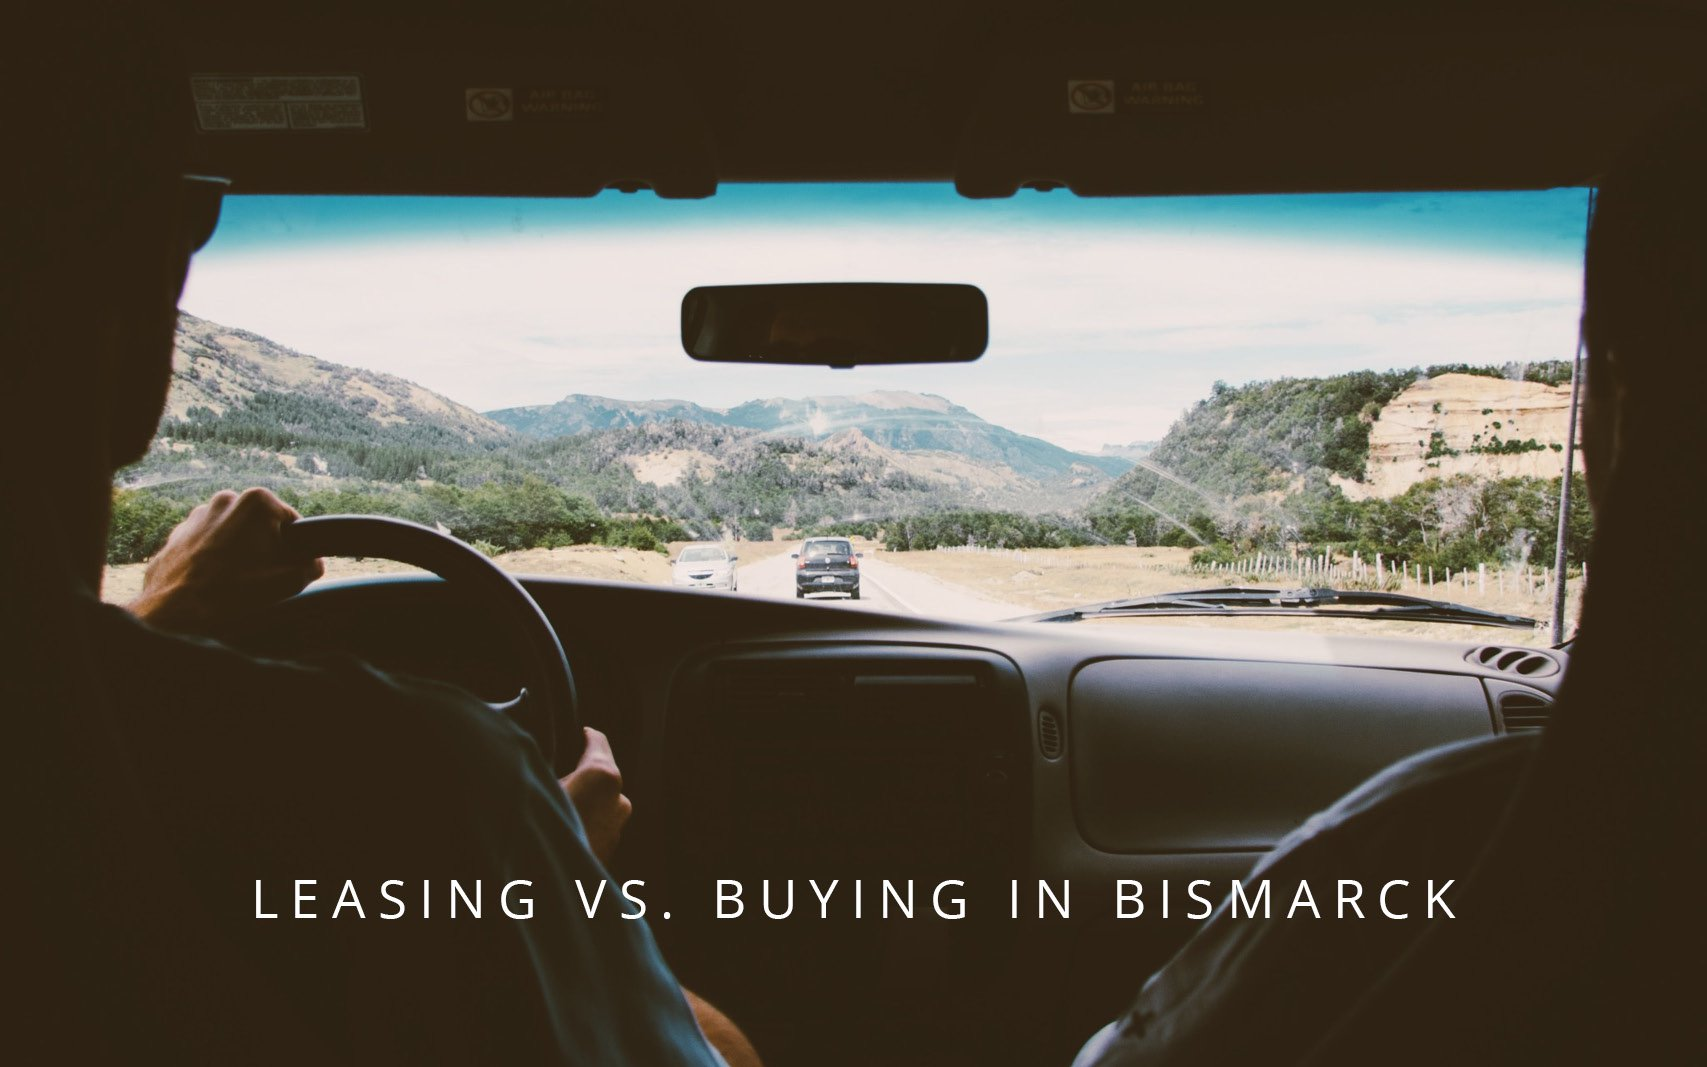 Leasing versus buying Bismarck